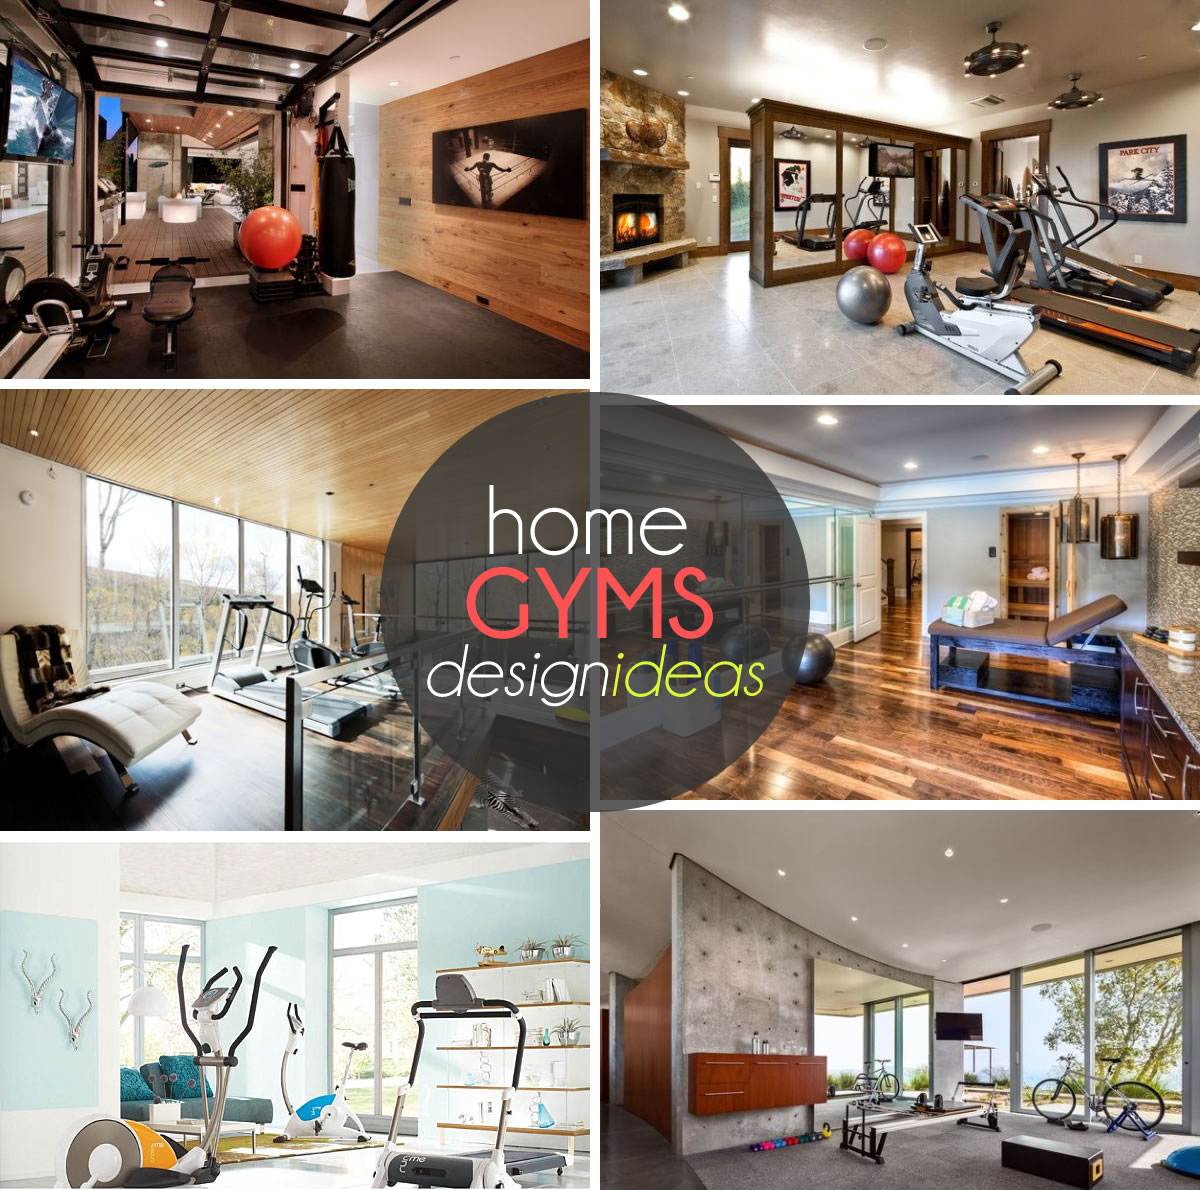 Home Gym Ideas And Gym Rooms To Empower Your Workouts - Home gym design ideas